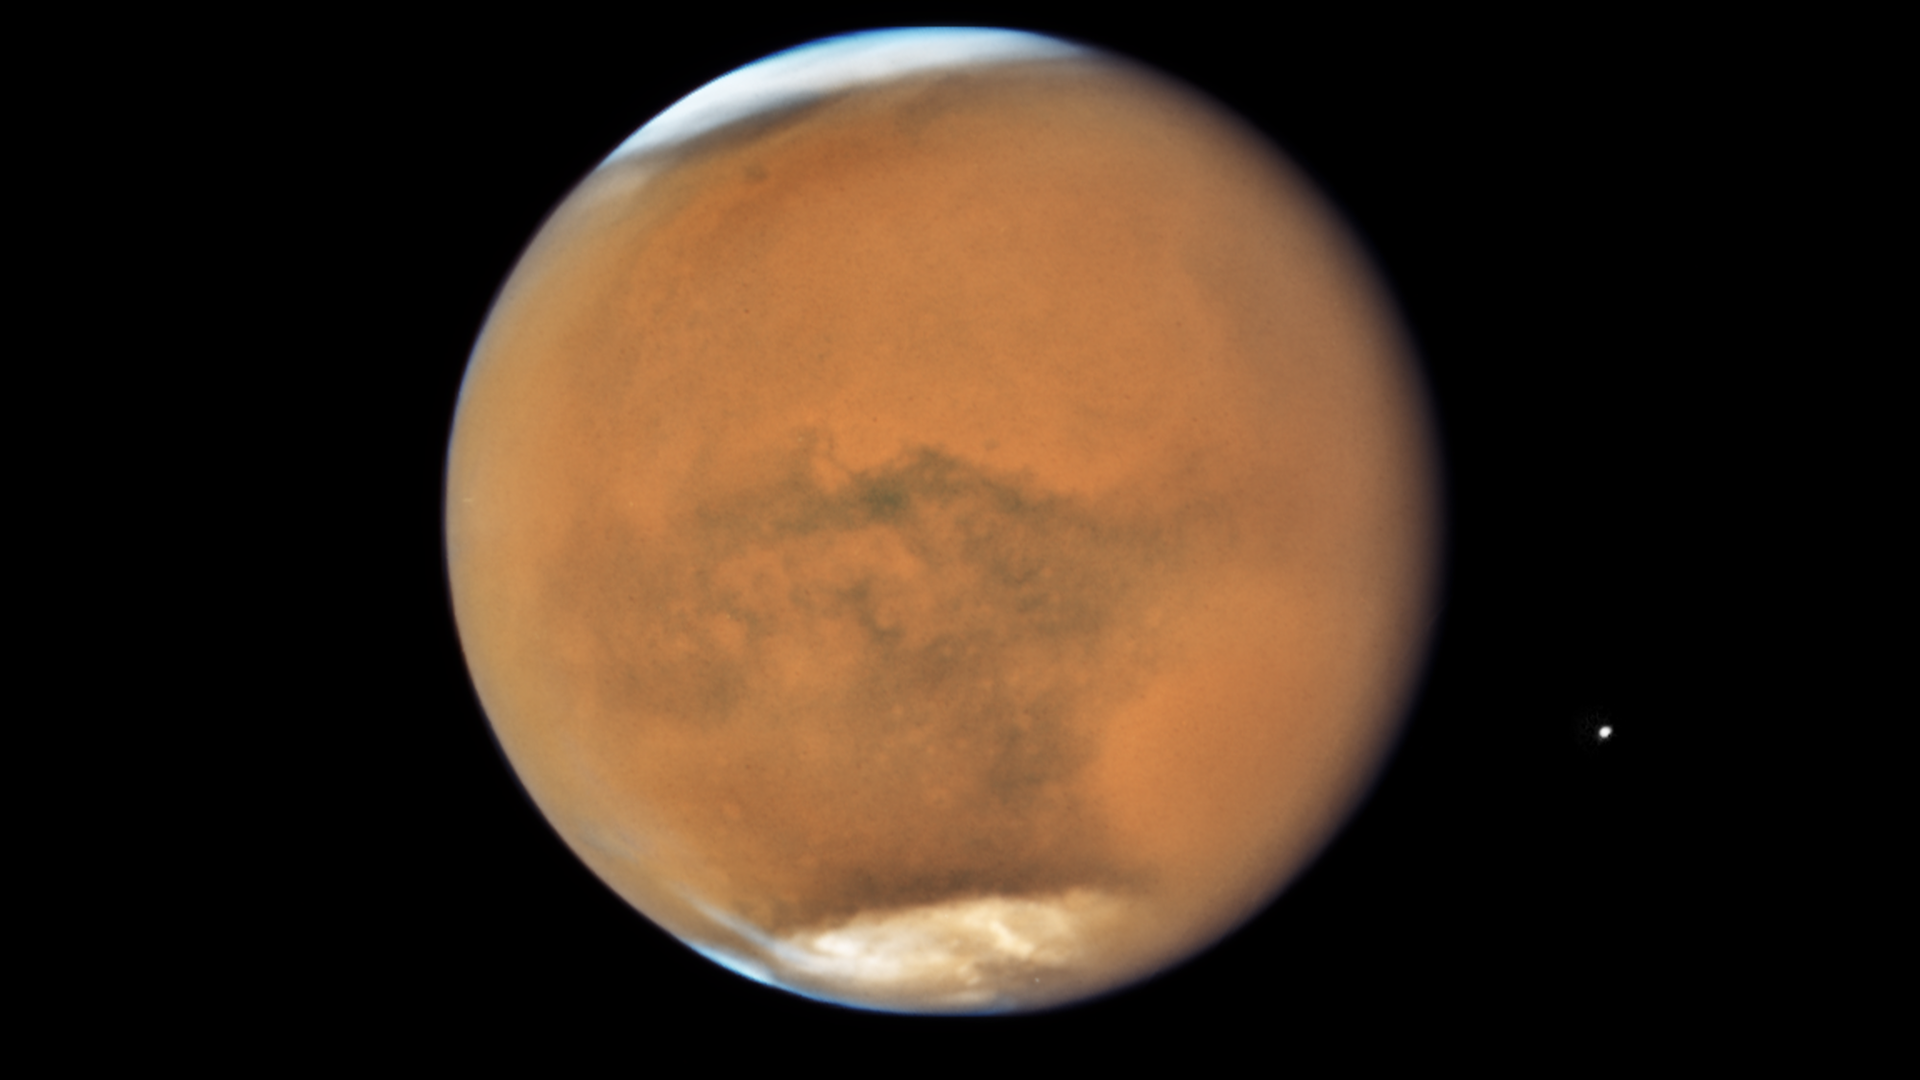 Mars seen by the Hubble Space Telescope. Photo: NASA/ESA/STScI